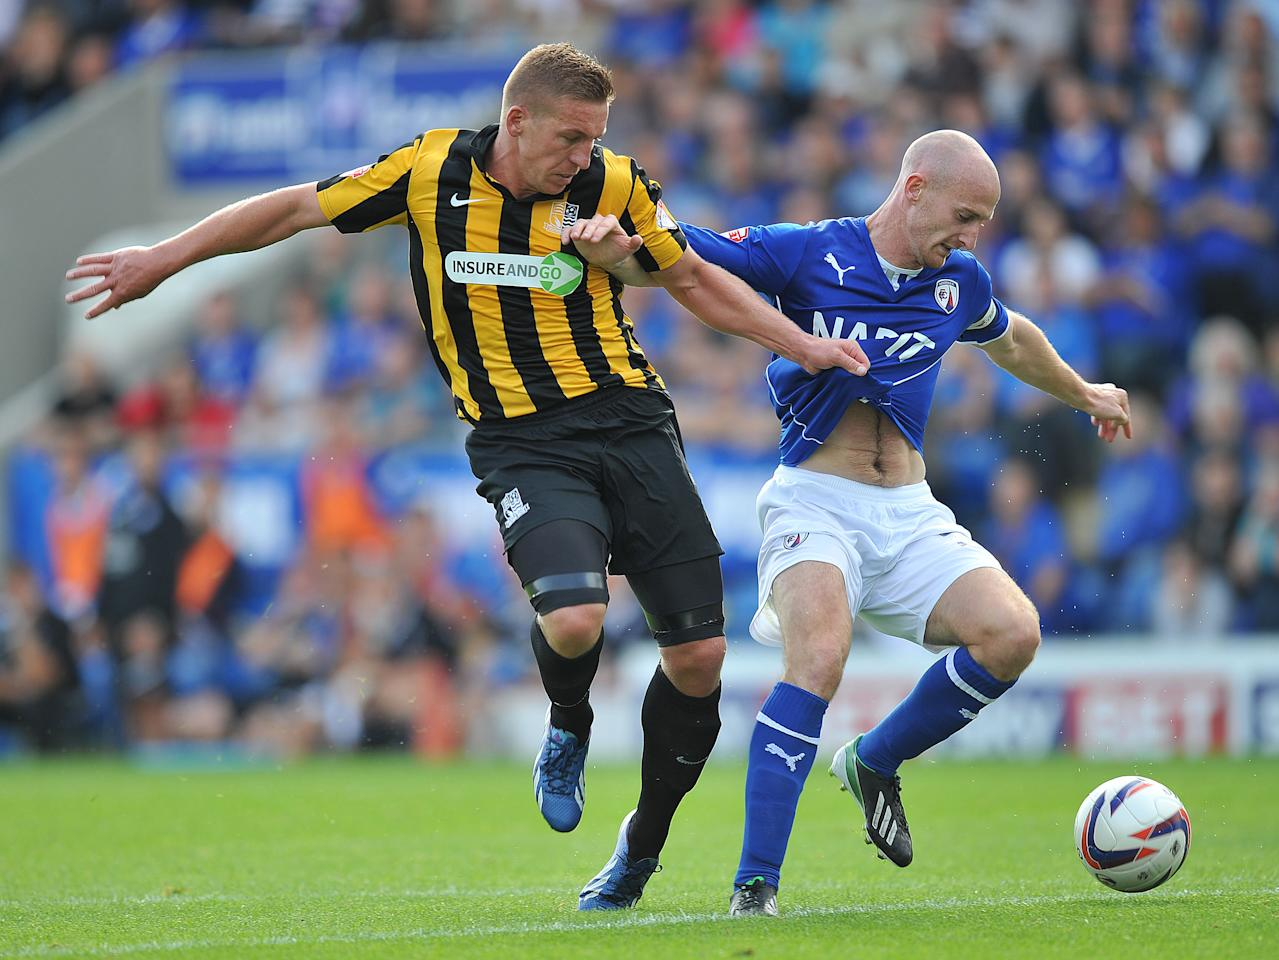 Chesterfield's Drew Talbot and Southend United's Freddy Eastwood battle for the ball during the Sky Bet Football League Two match at the Proact Stadium, Chesterfield.